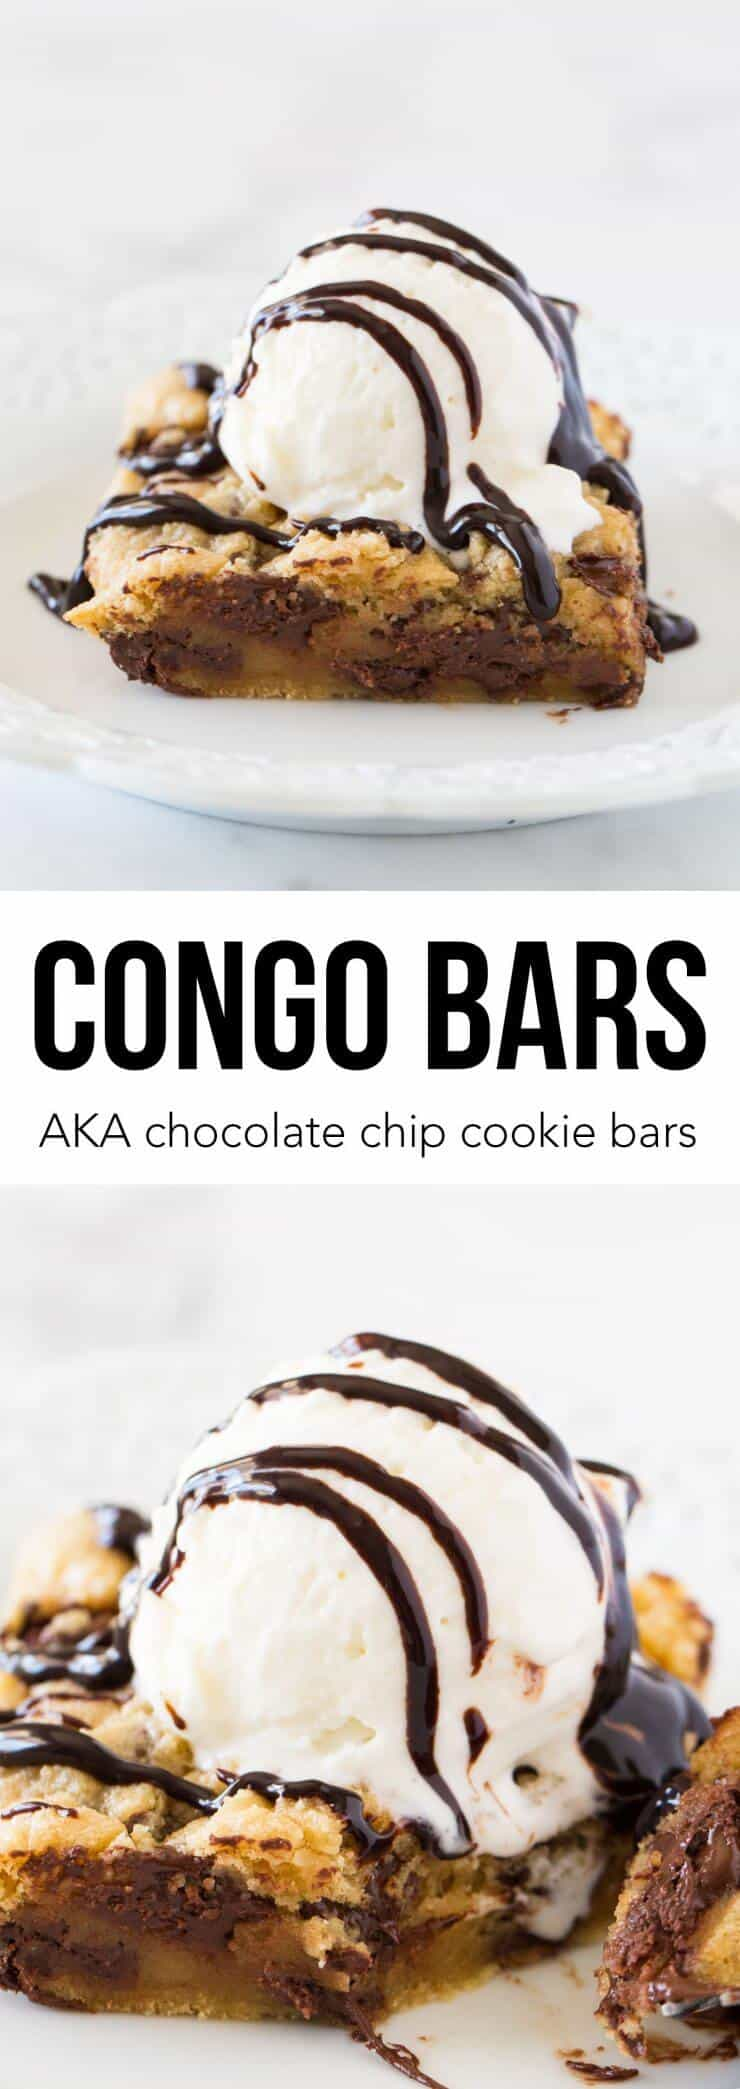 Congo bars AKA chocolate cookie bars recipe...so yummy with ice cream on top! My husband's favorite dessert!